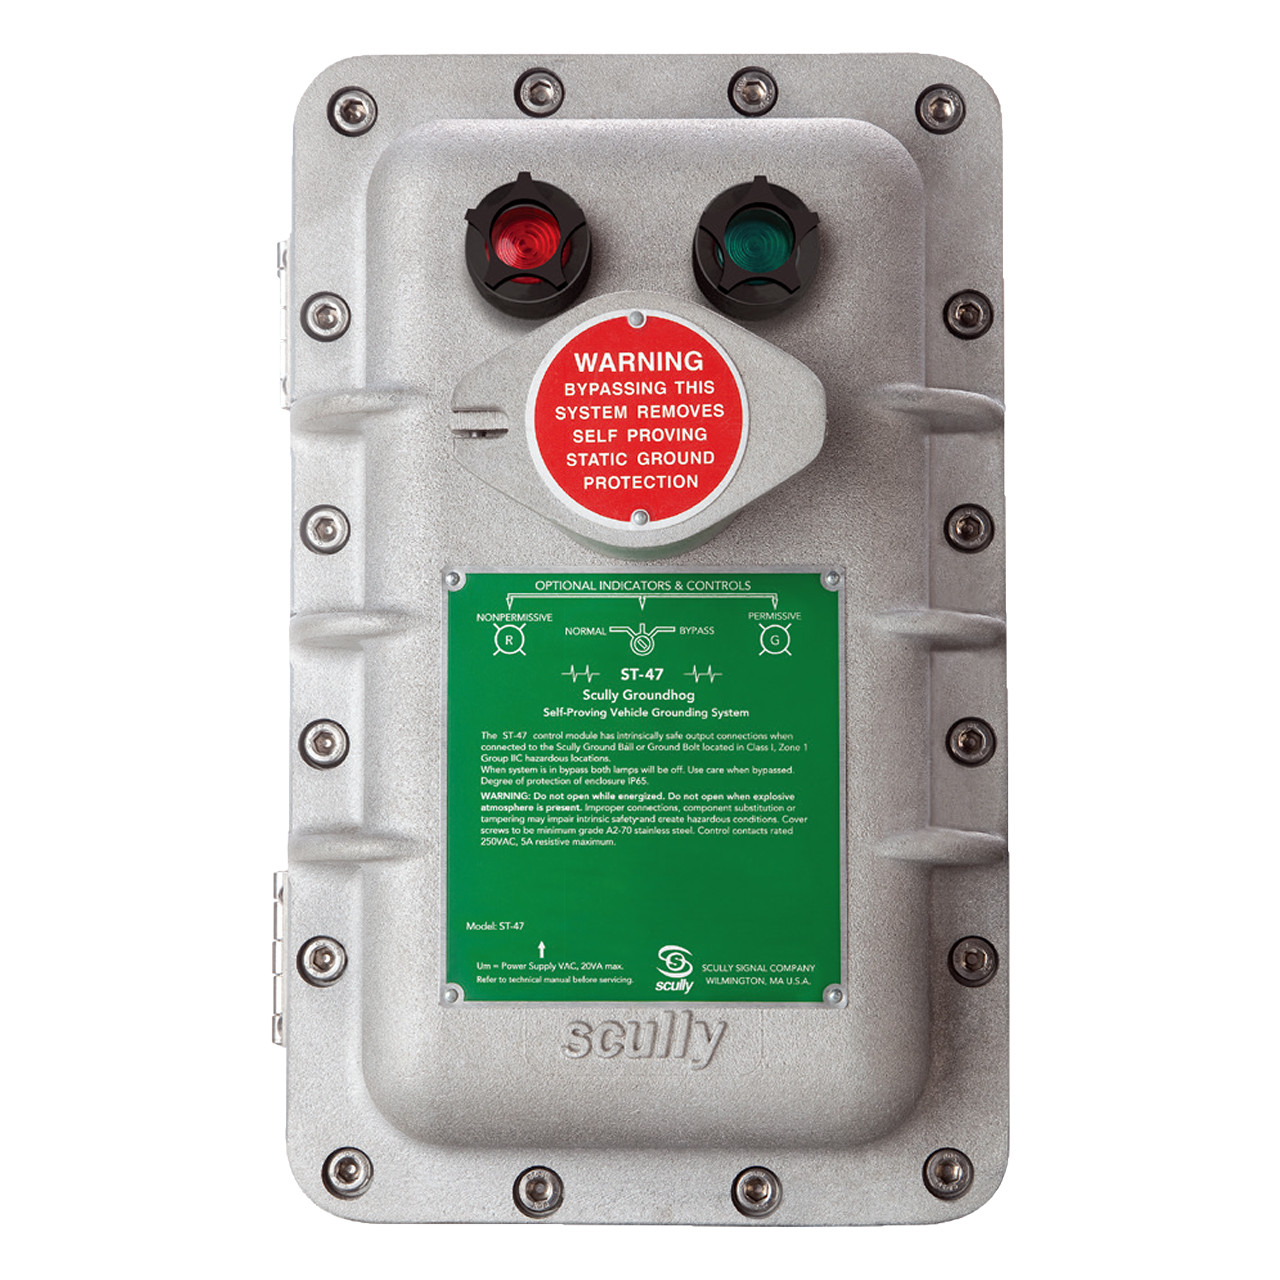 Scully ST-47 Groundhog Static Ground Proving Control Monitor w/ Lamps and  Key Protected